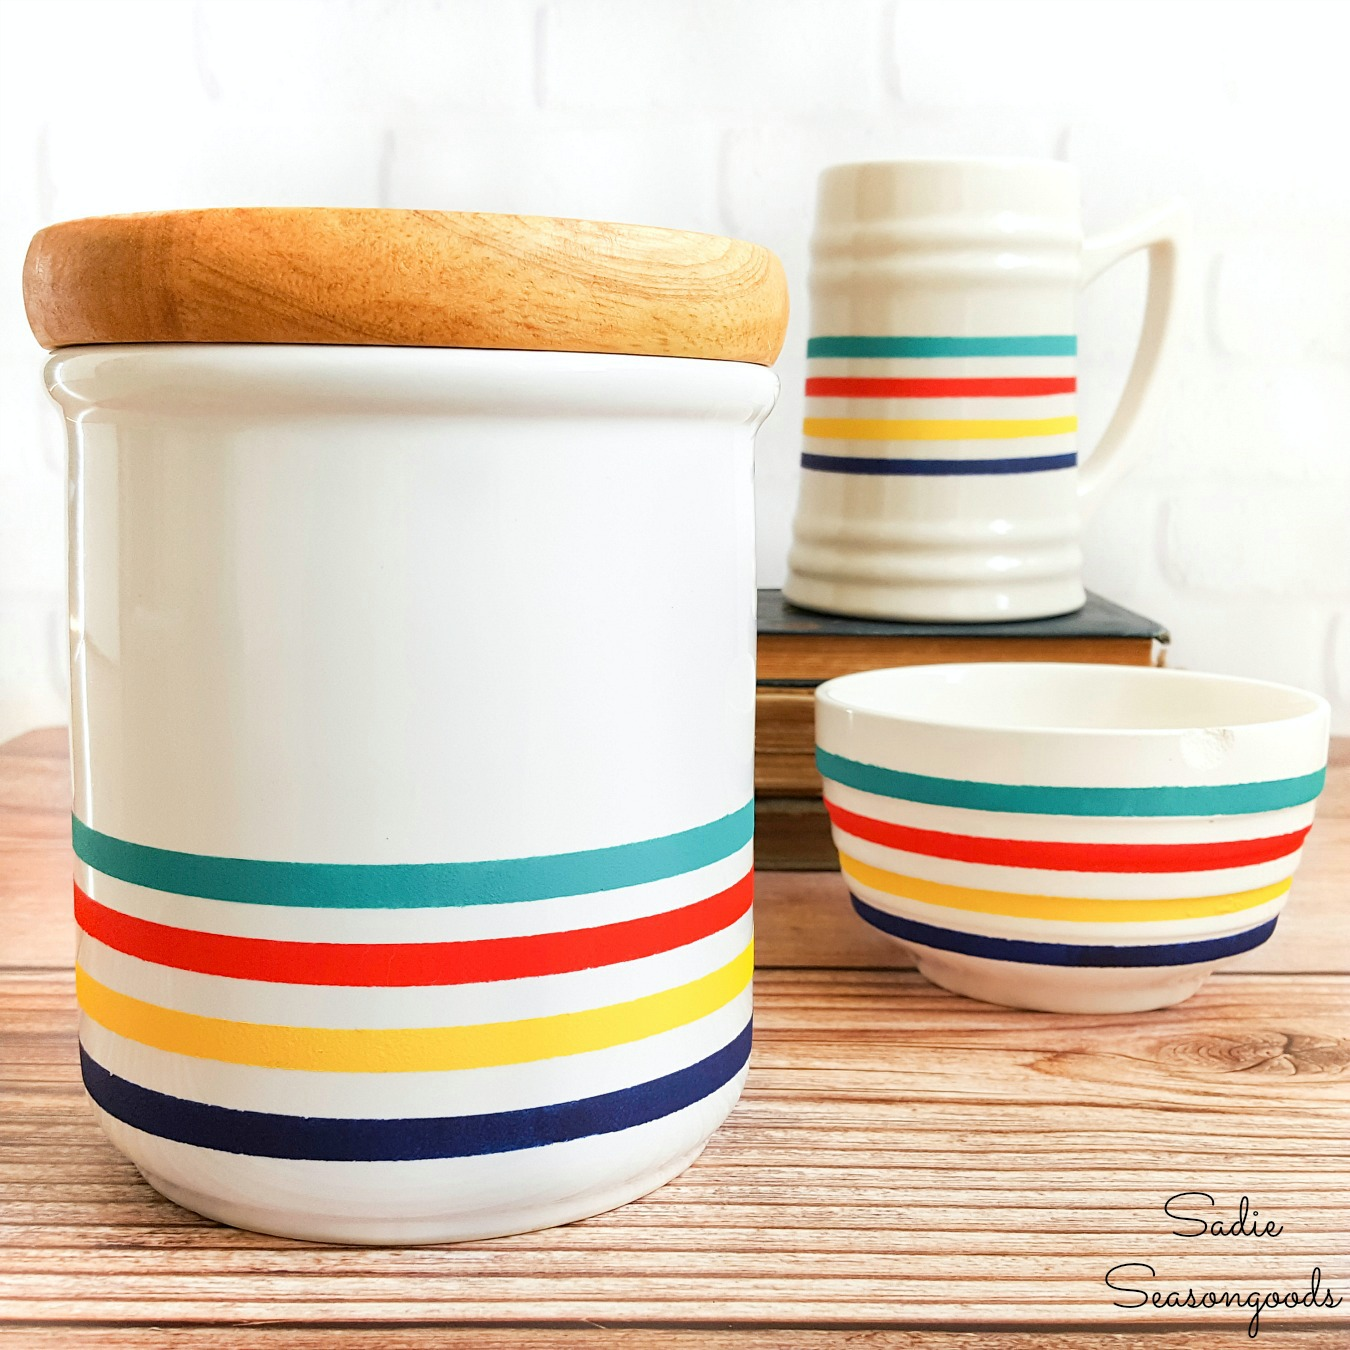 DIY Cabin Decor with Hudson Bay Stripes on Plain White Dishes